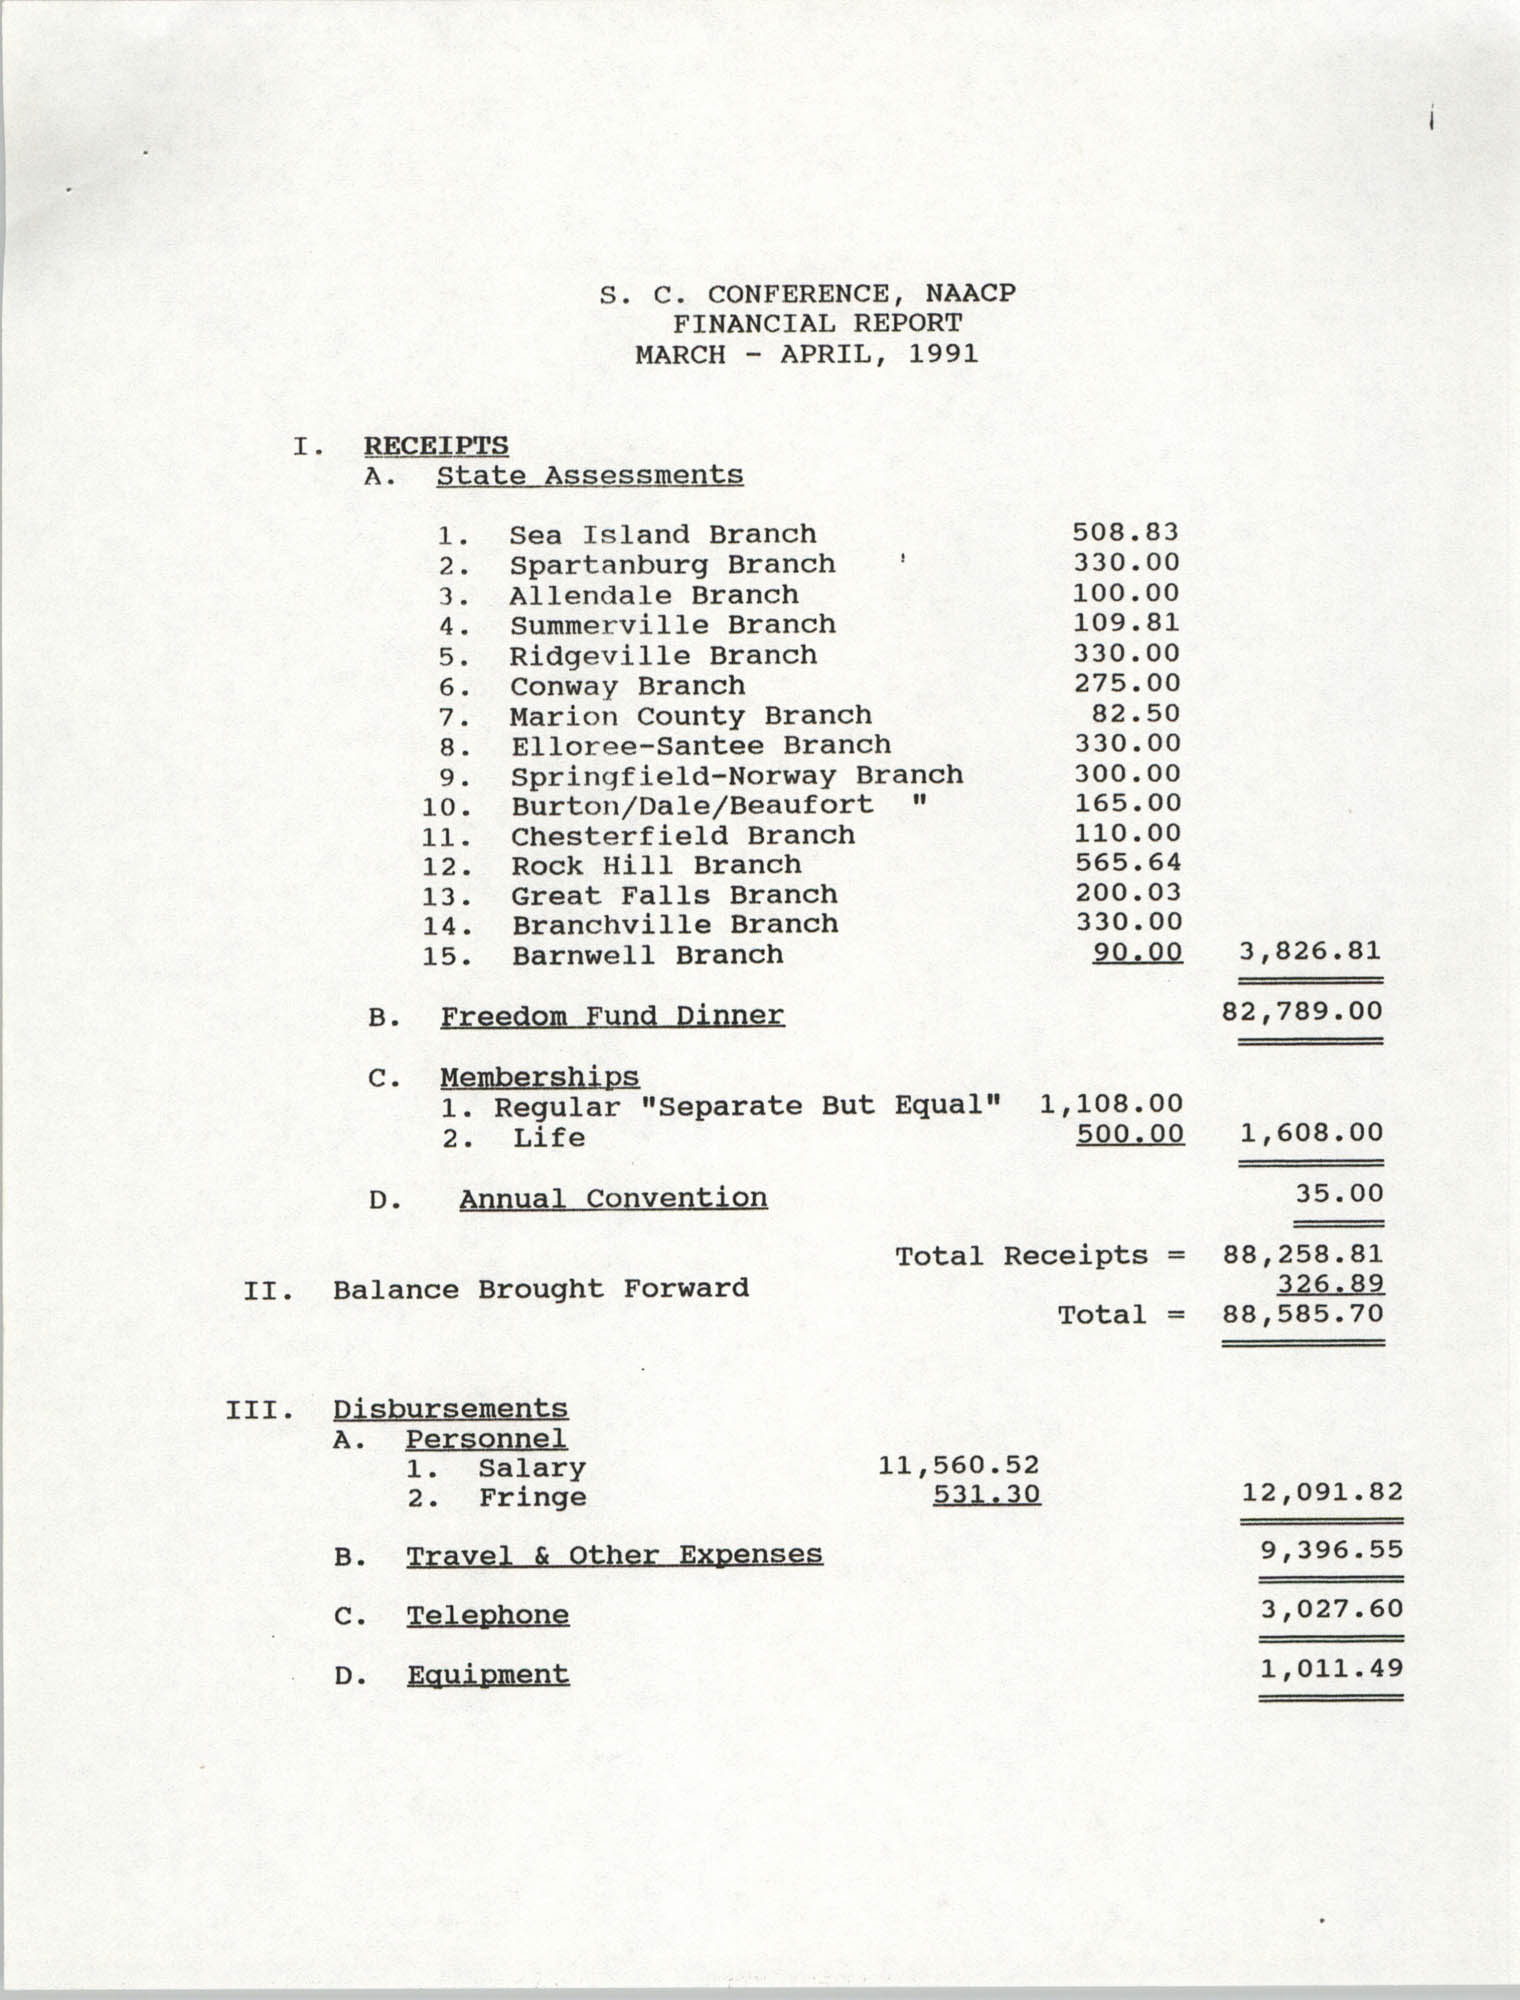 South Carolina Conference of Branches of the NAACP Financial Report, March to April, 1991